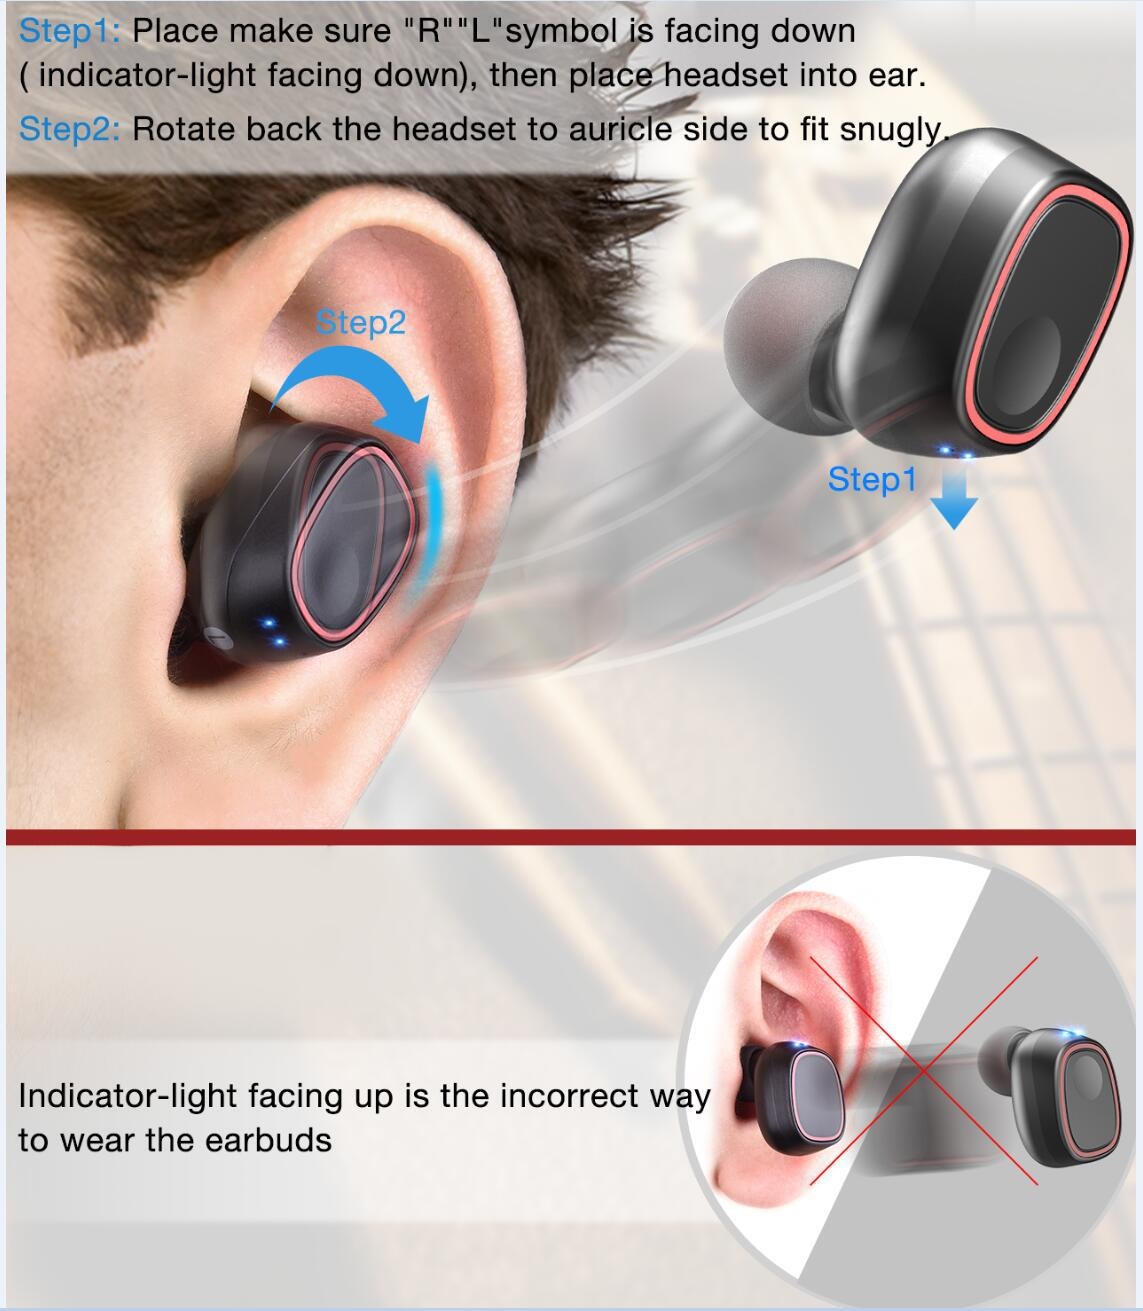 otate back the headset to auricle side to fit snugly